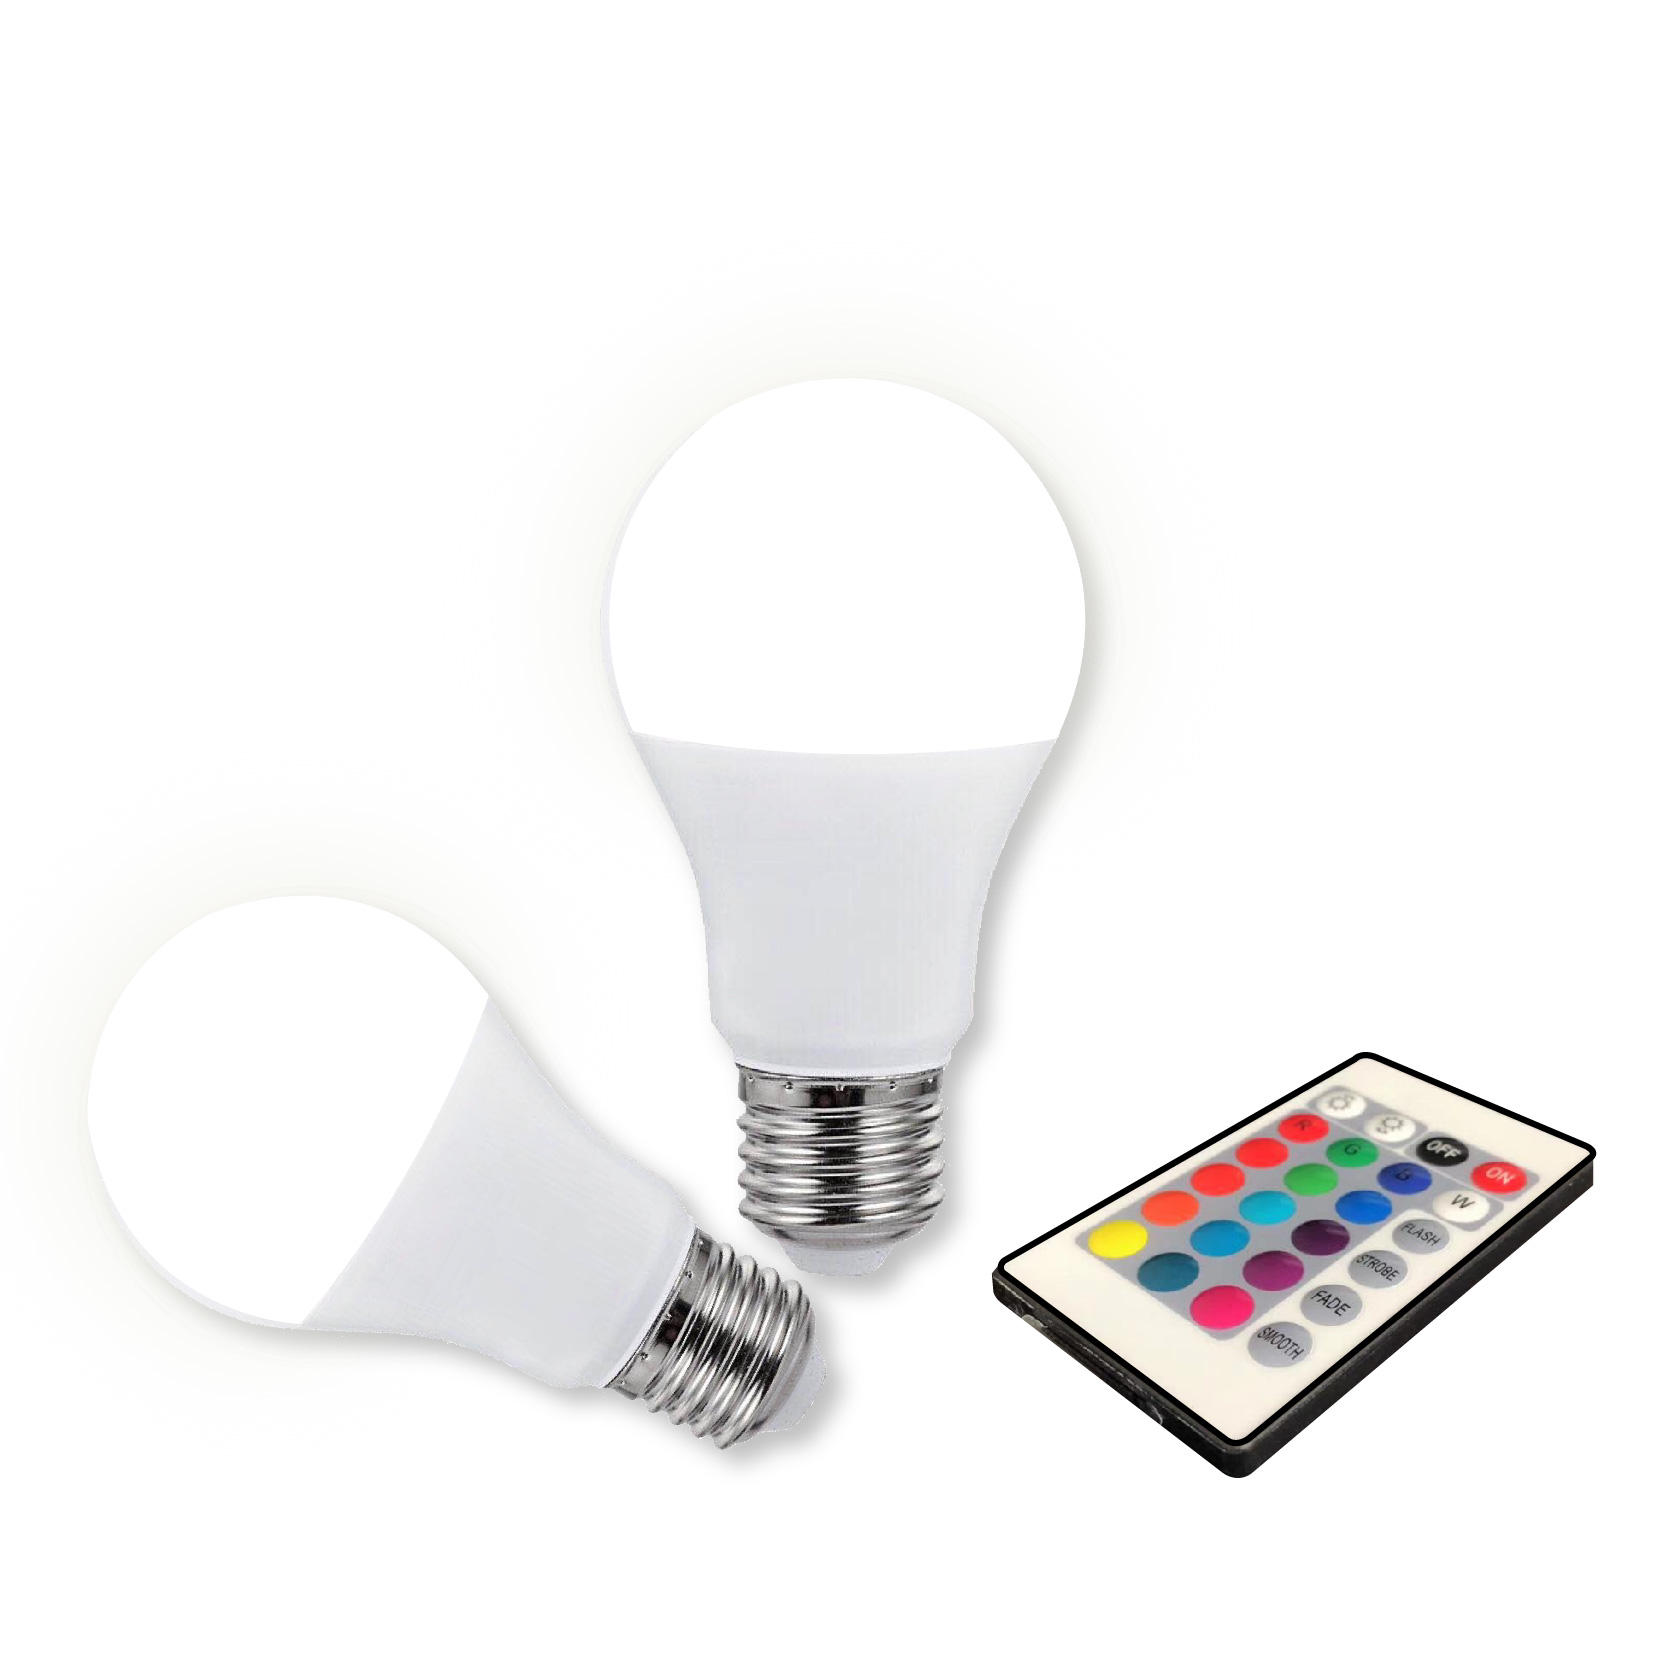 Colour Changing Led Lamp Rf Afstandsbediening Leven Smart Led Licht Met Afstandsbediening